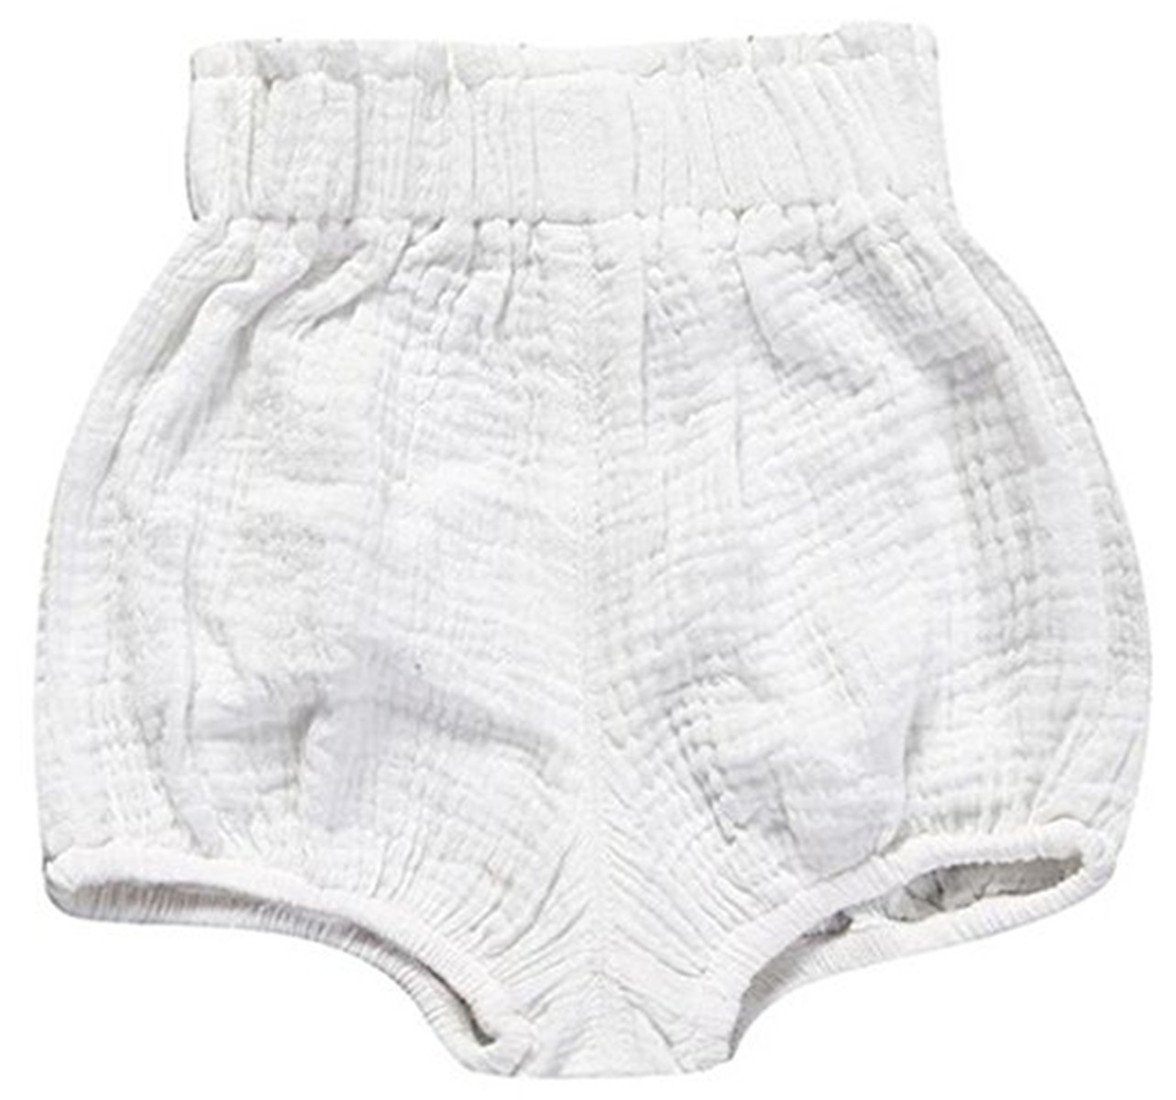 Baptism Knickers and Socks Set 0-6 Months Frill Back Pants Lace Socks Baby Girls Christening